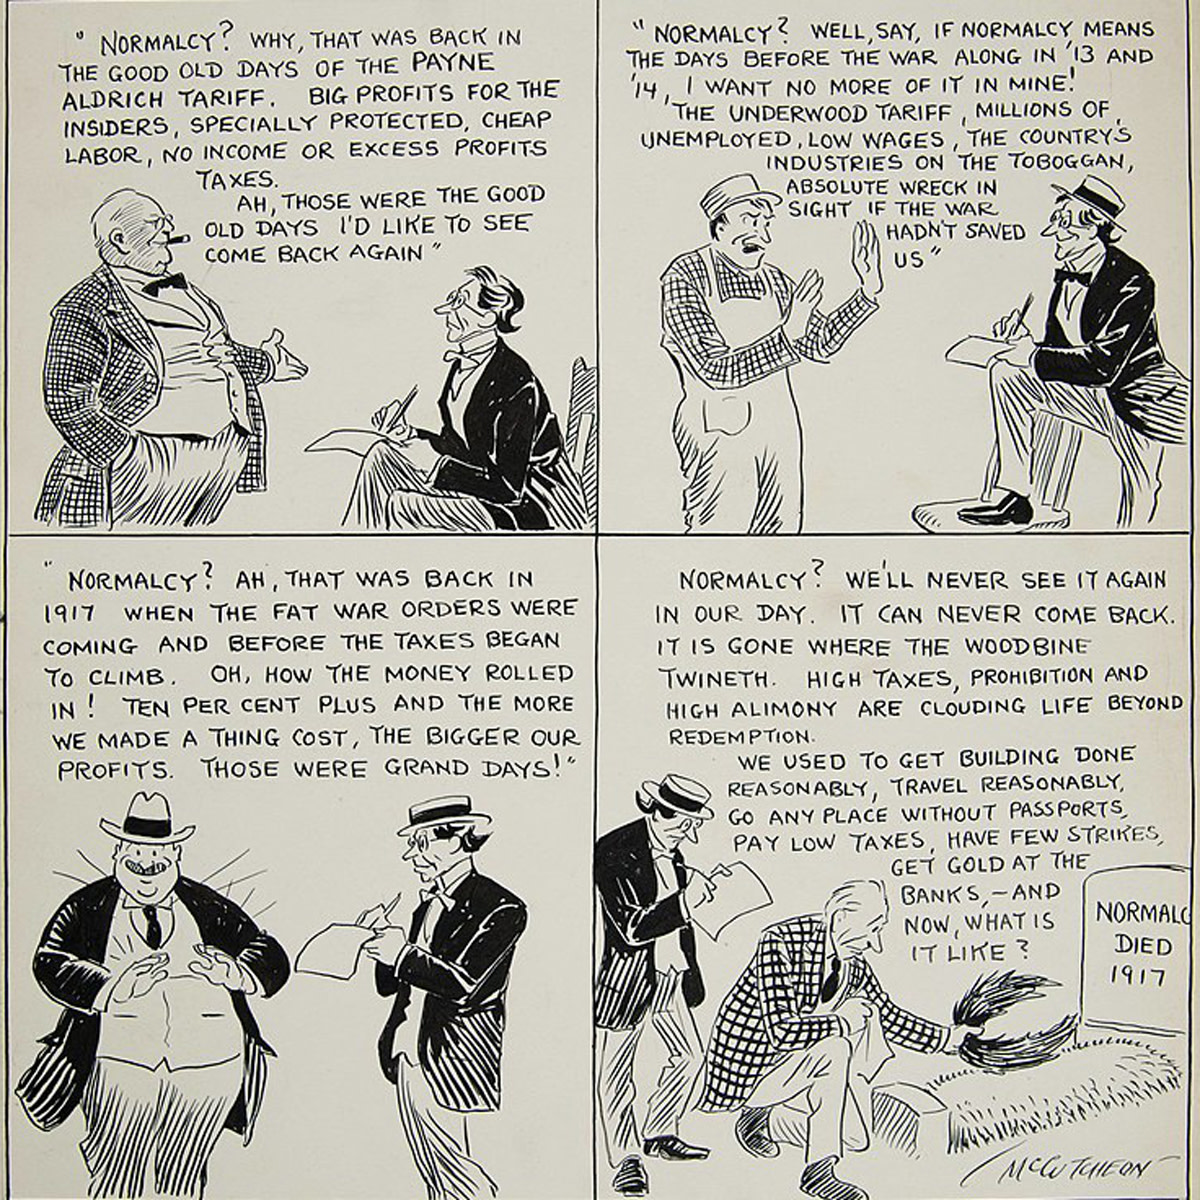 What is Normalcy? 1921 cartoon